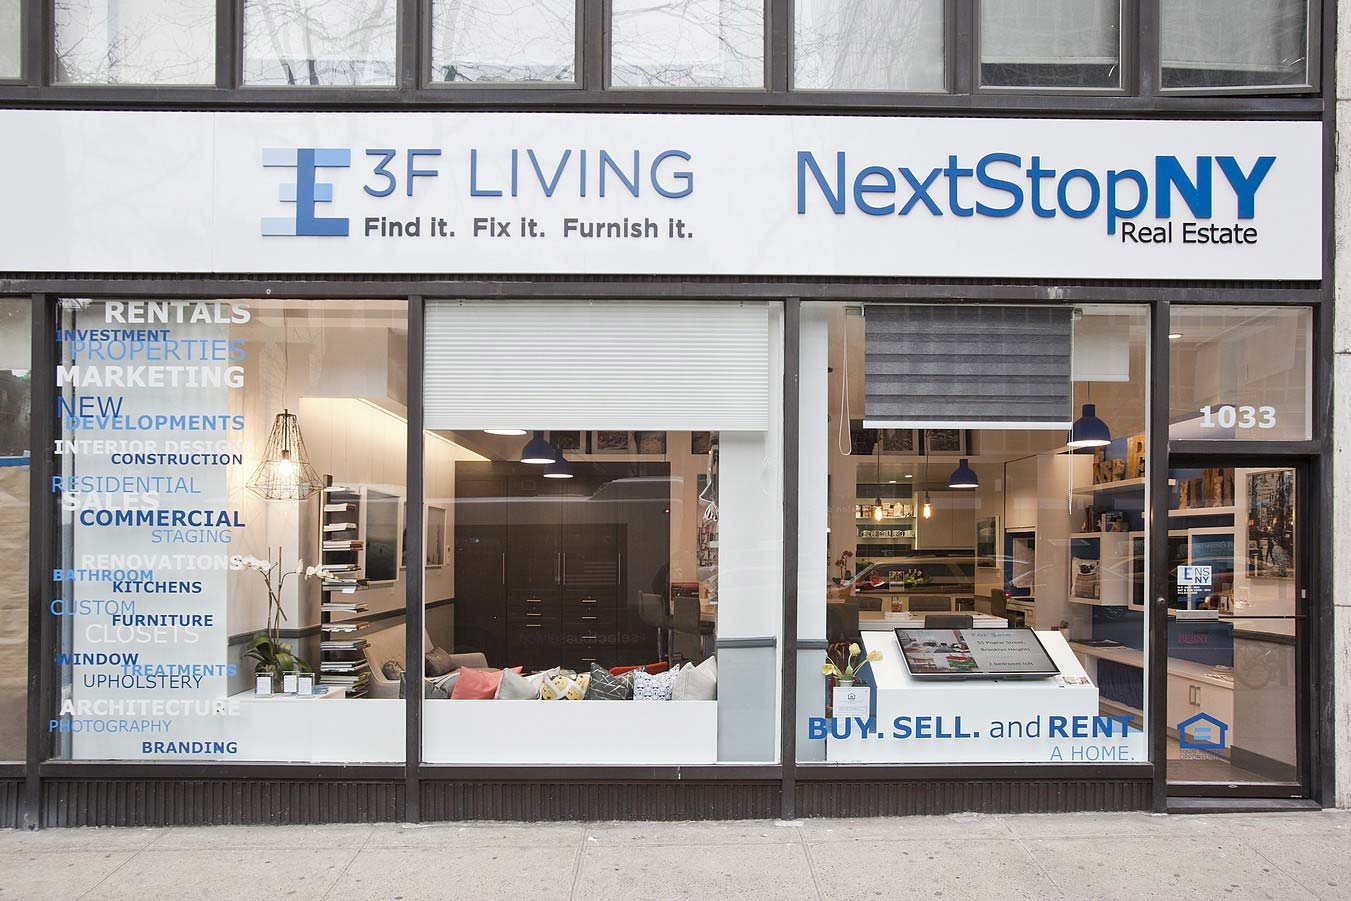 The NextStopNY and 3F Living joint showroom.